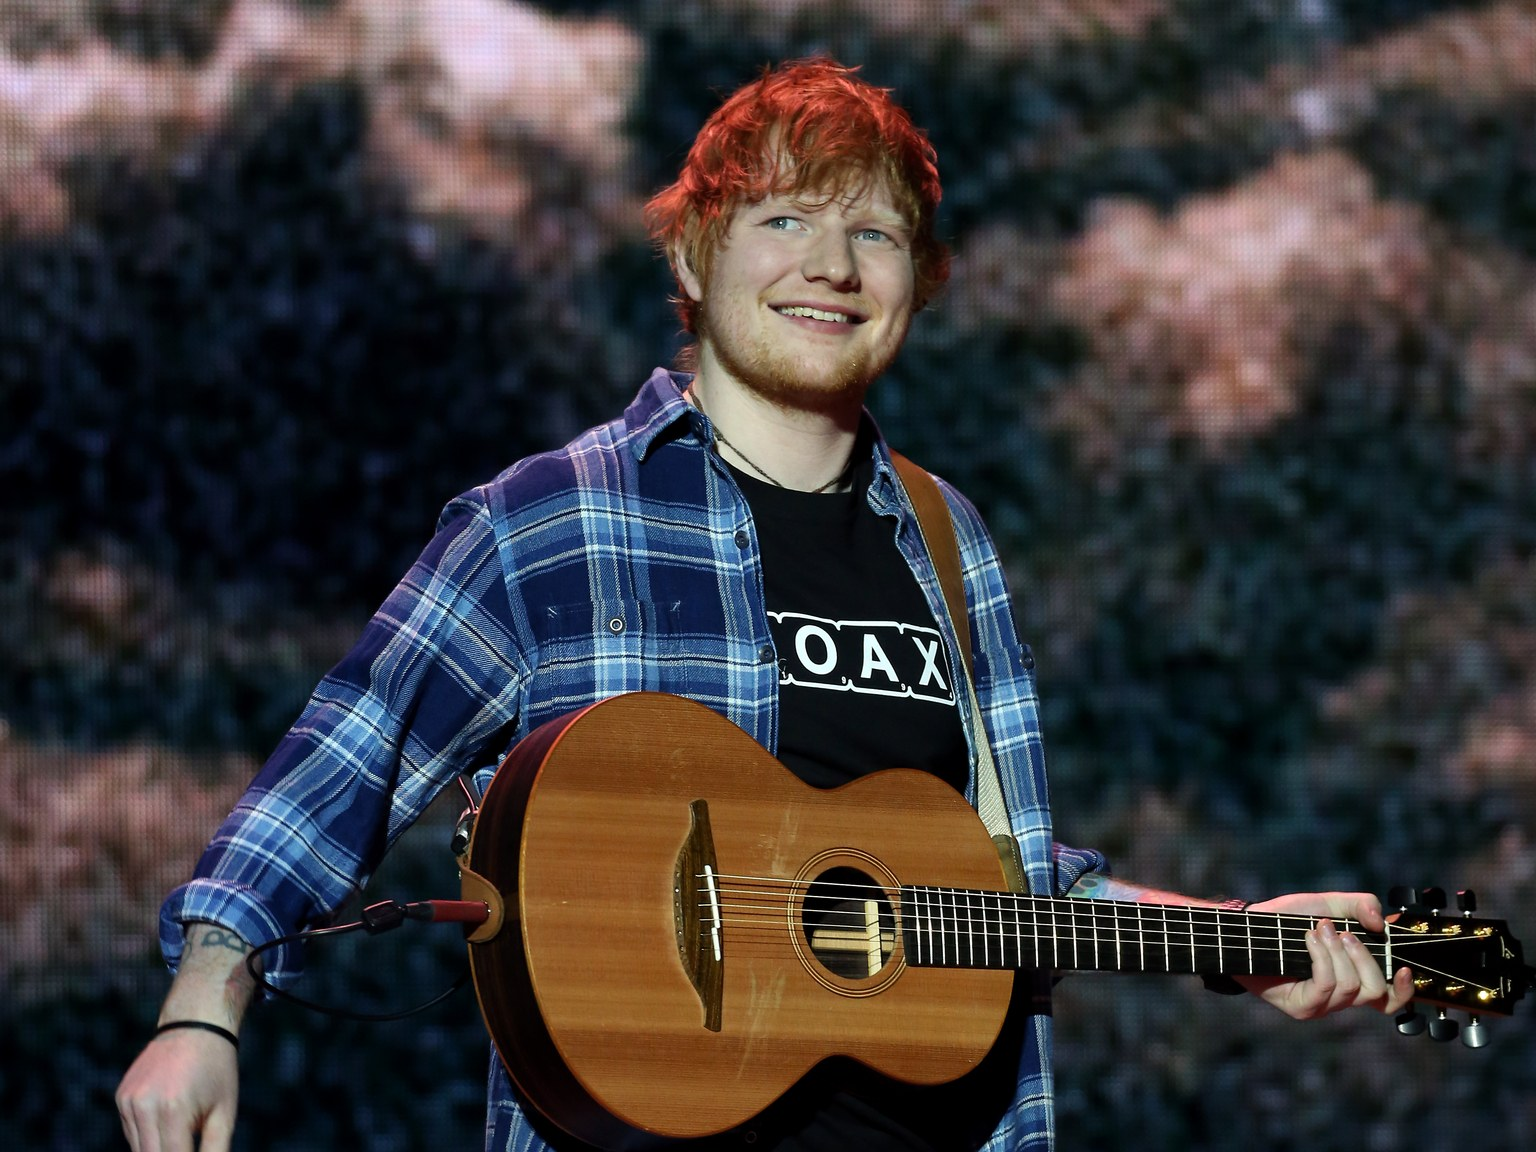 Ed Sheeran Singer-songwriter